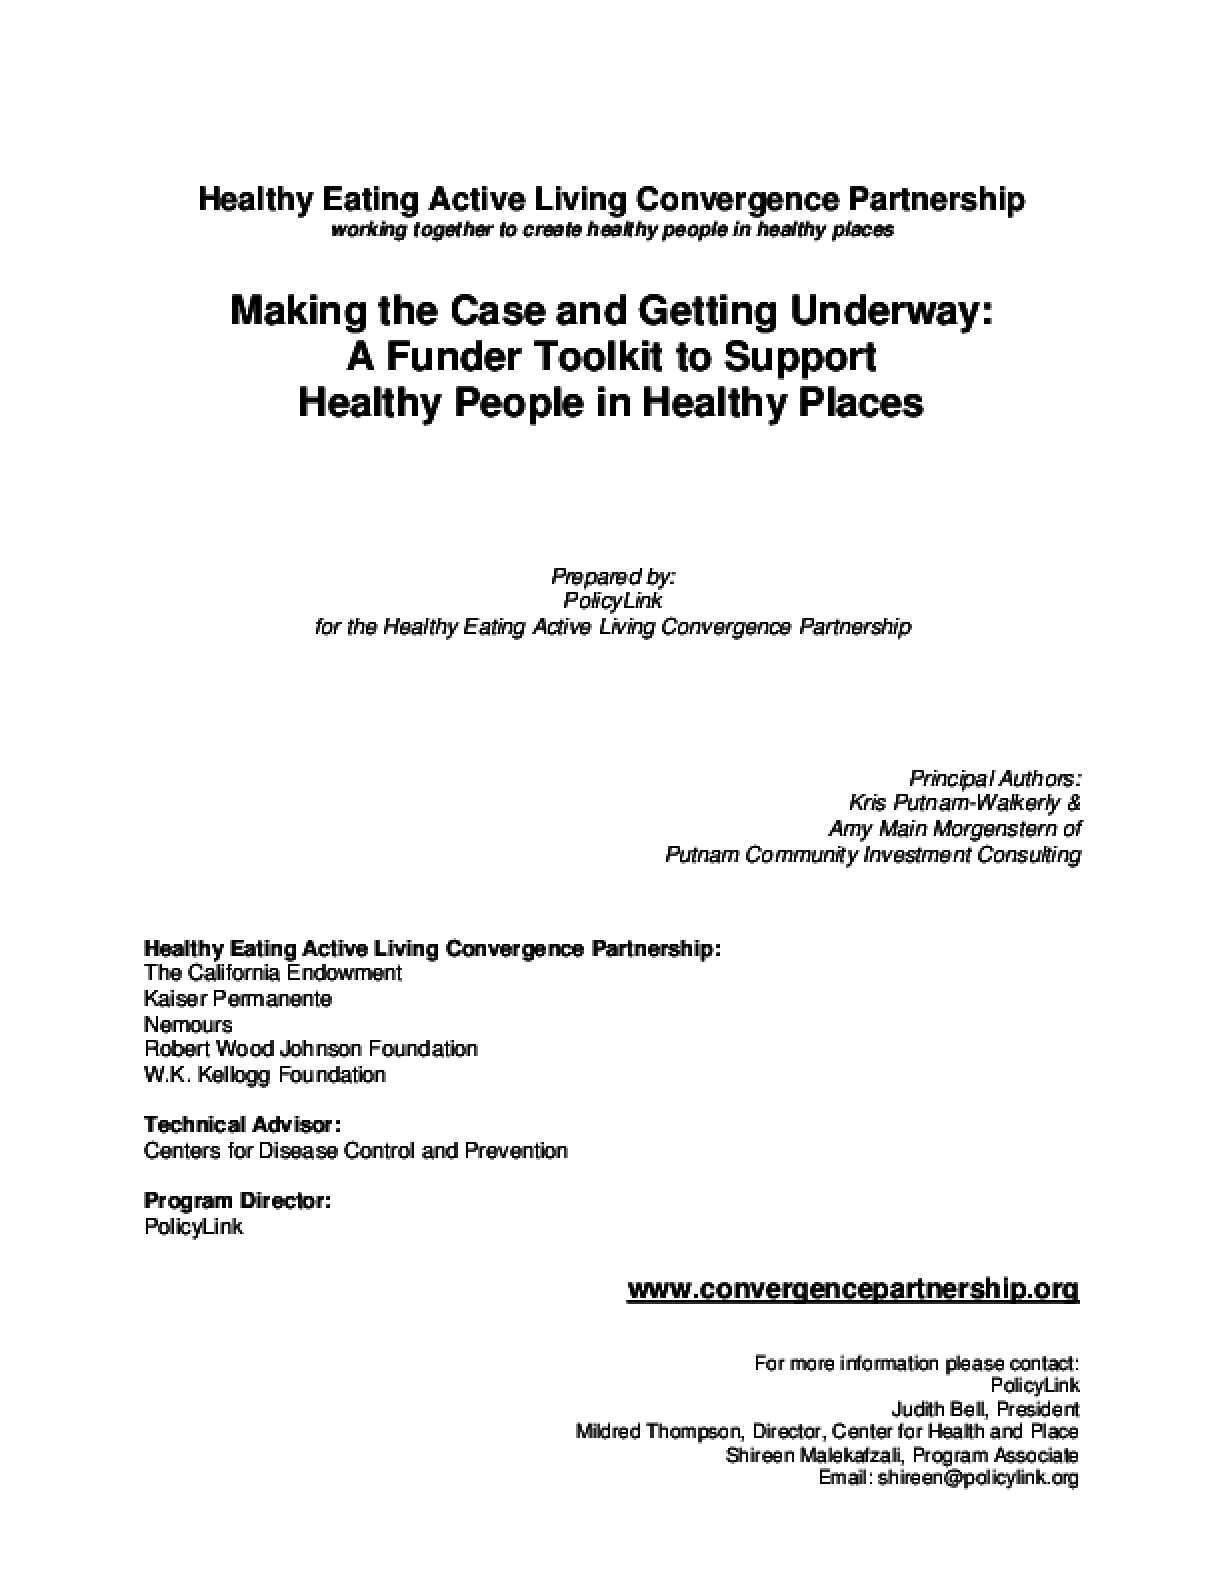 Making the Case and Getting Underway: A Funder Toolkit to Support Healthy People in Healthy Places